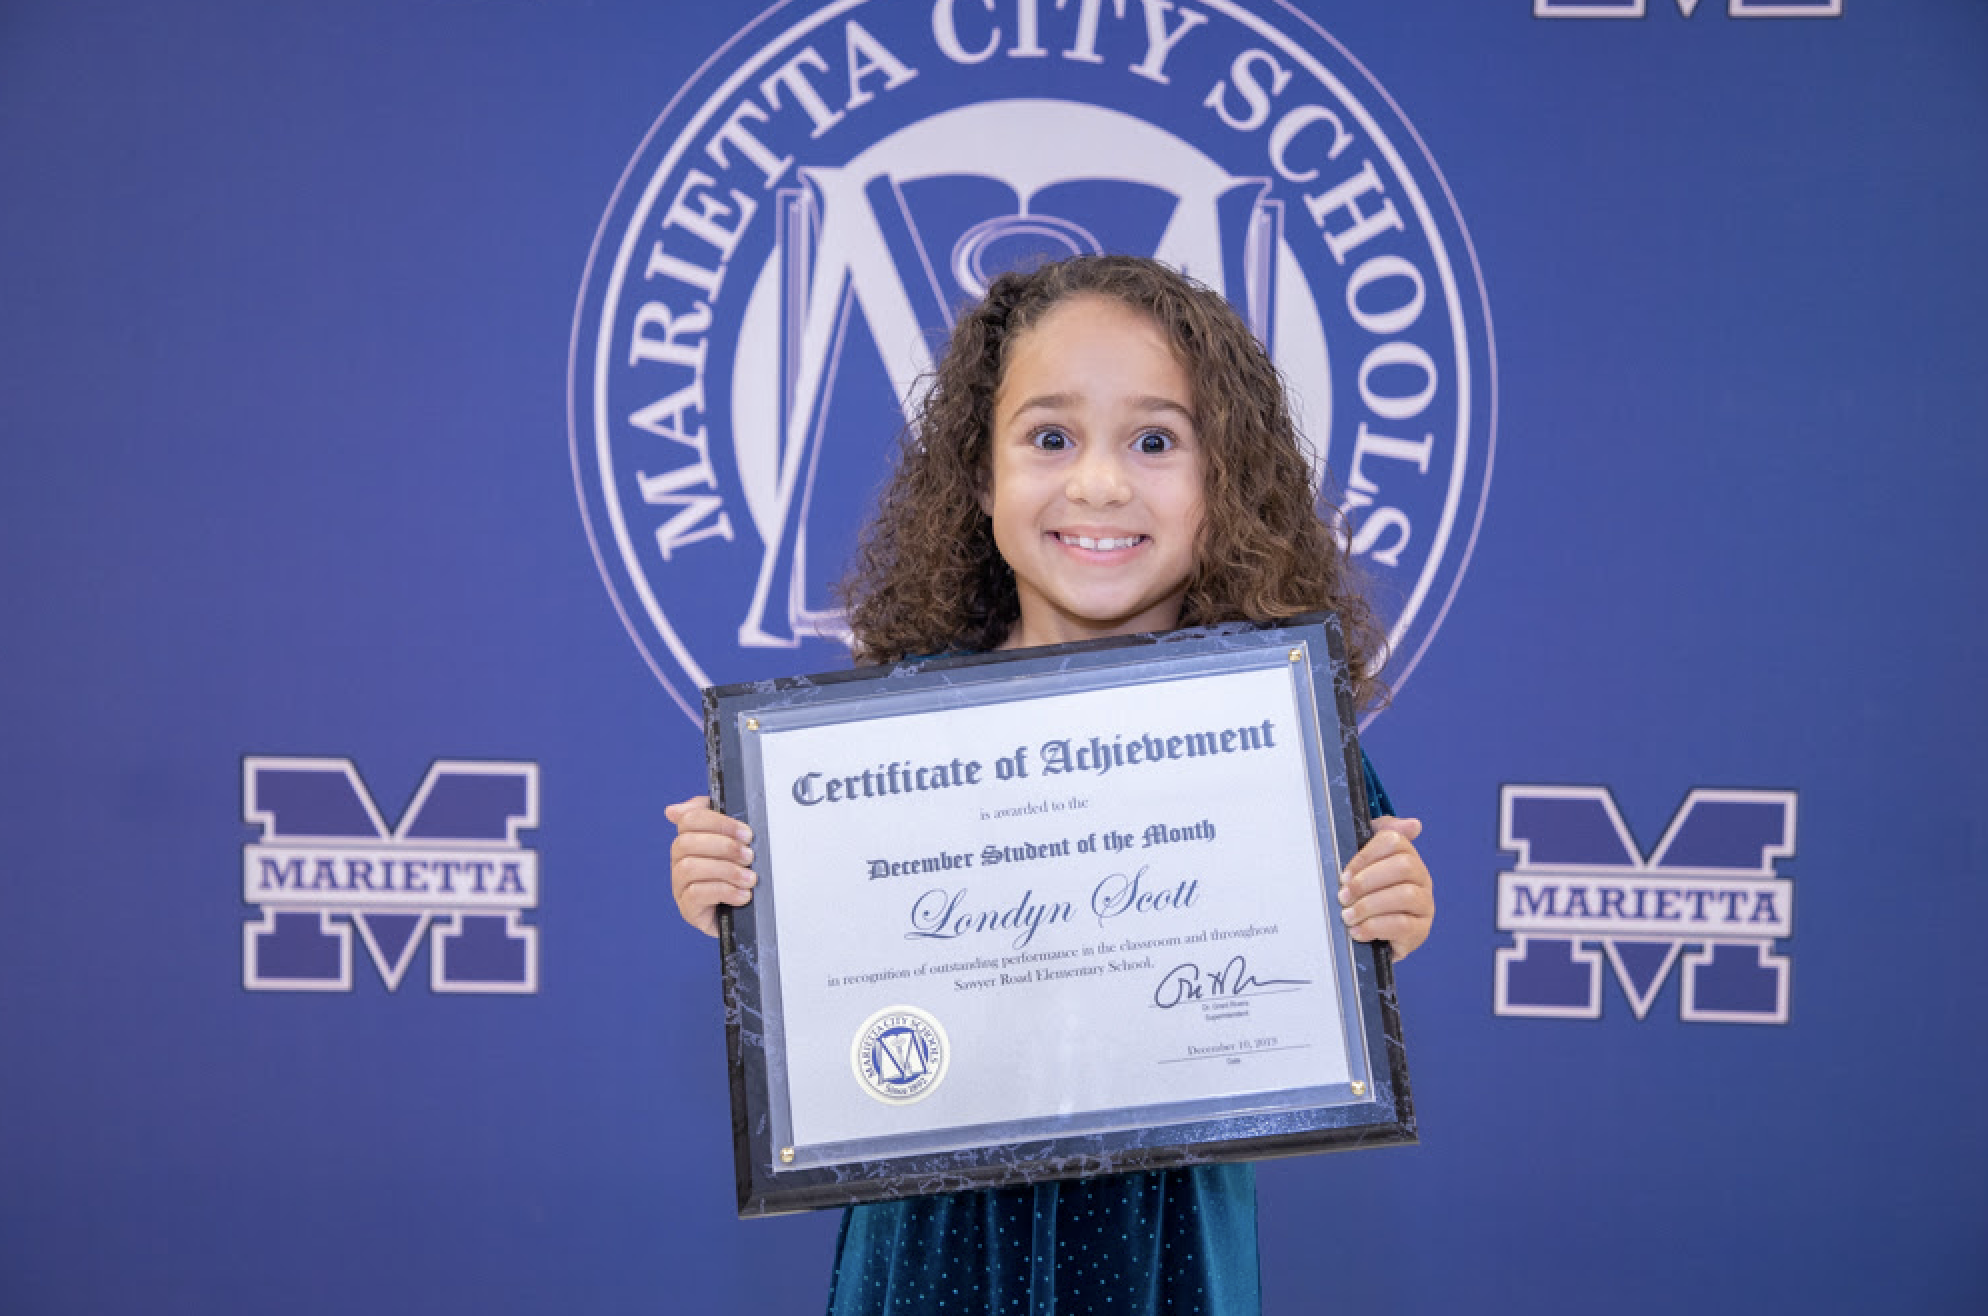 Londyn Scott: December Student of the Month